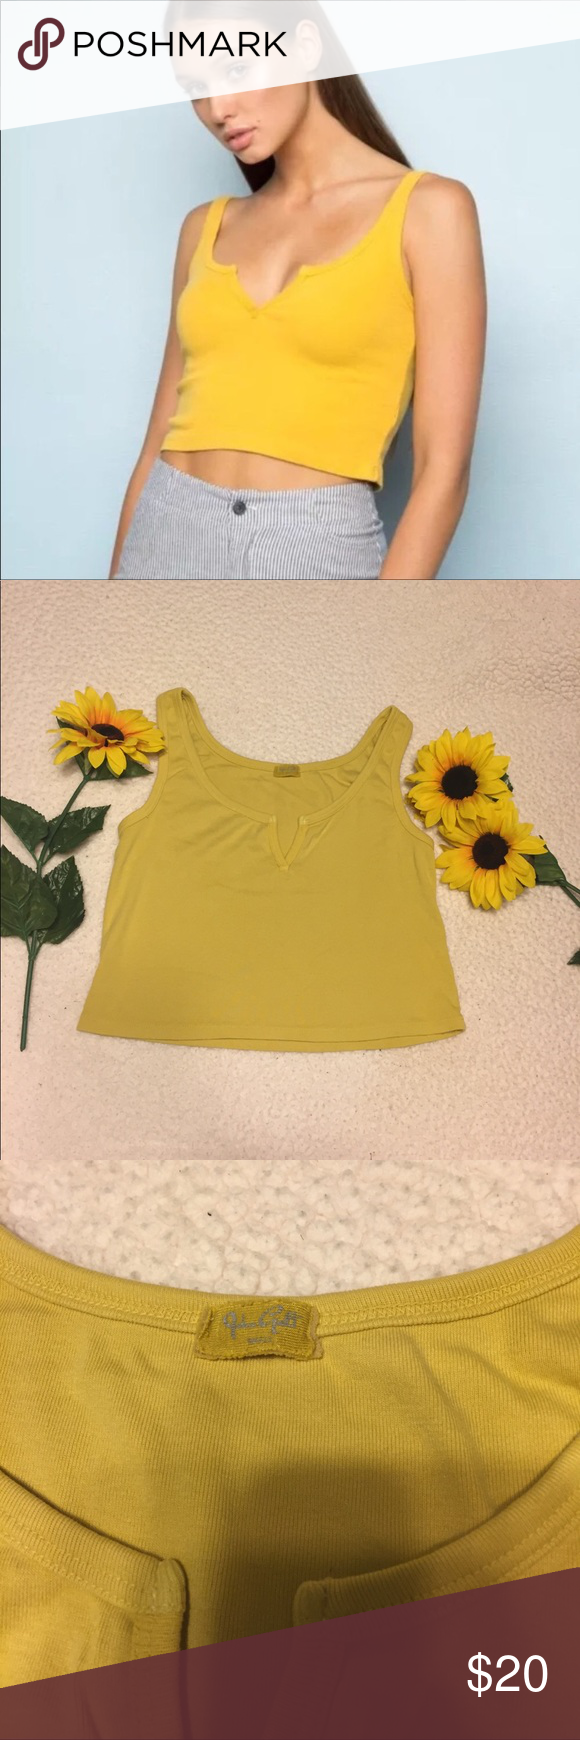 4d0e6fecc2192 Brandy Melville Trisha Tank top NWOT never worn. No flaws One size(XS-M)  Mustard yellow color Soft cotton material V-cut on front Crop fit Brandy  Melville ...